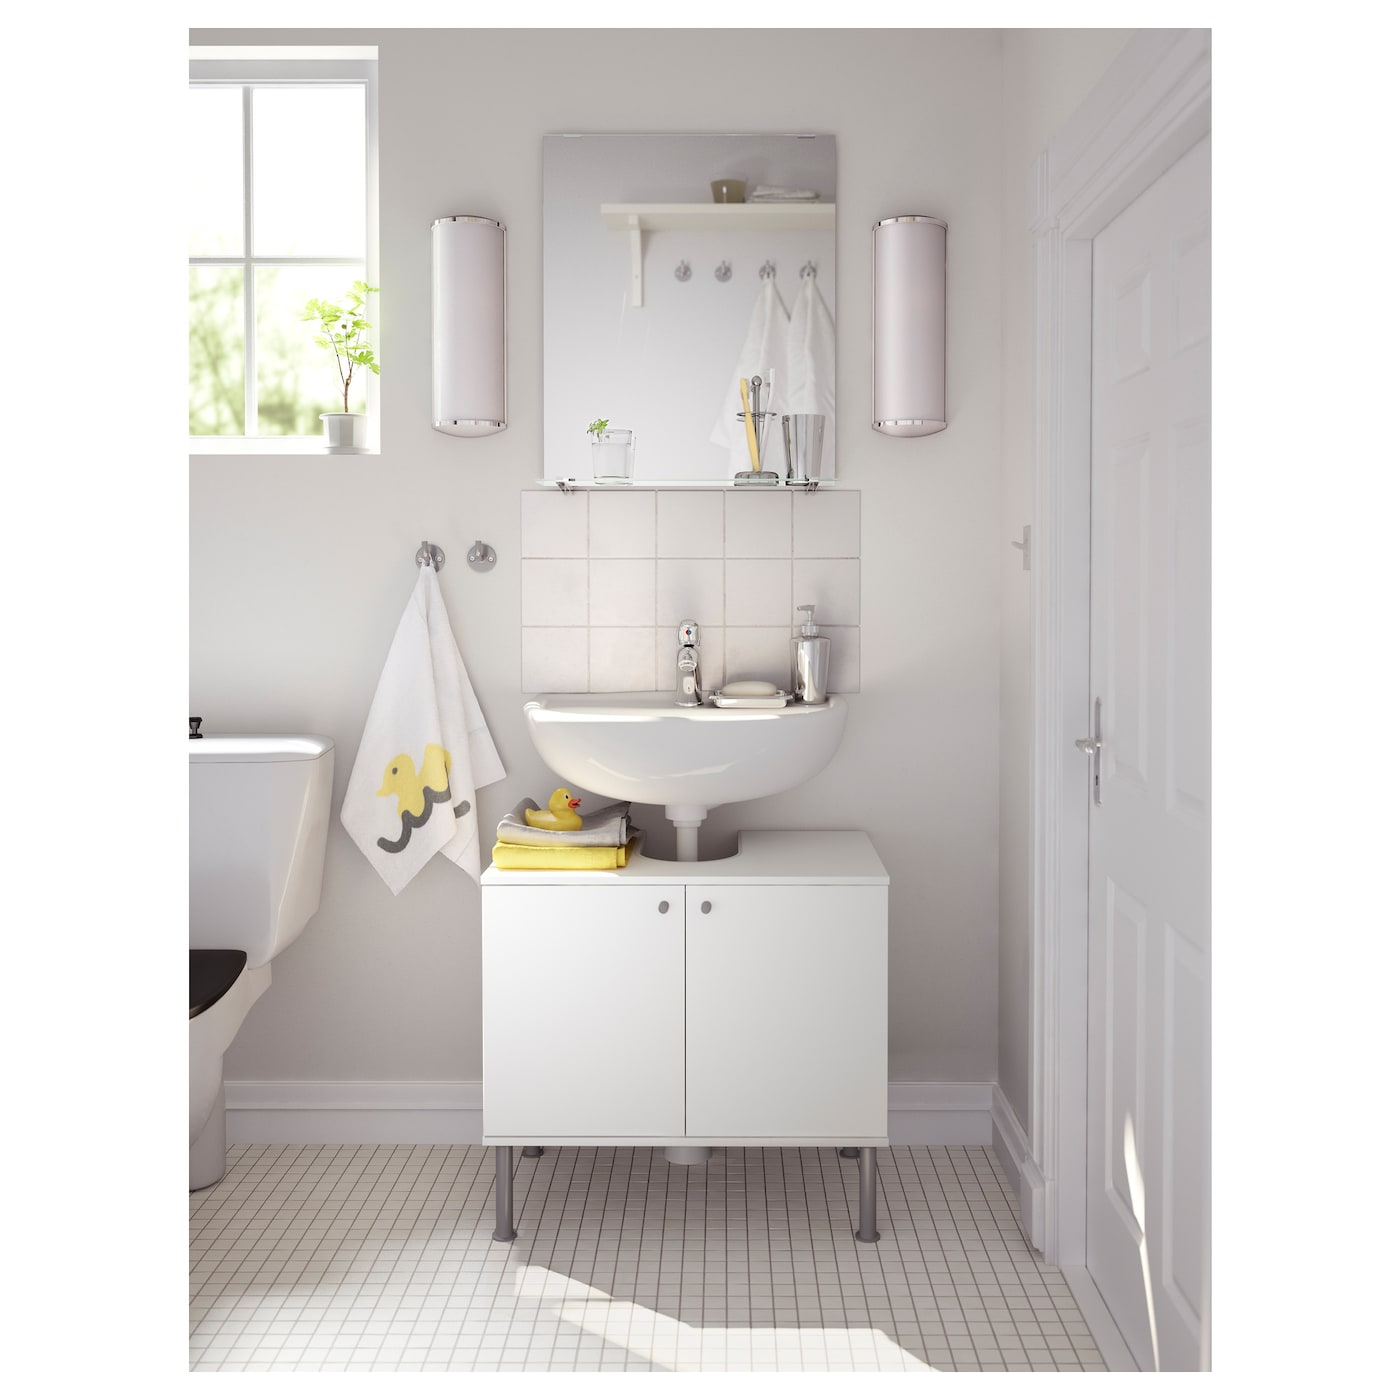 FULLEN Wash-basin base cabinet w 2 doors White 60x55 cm - IKEA